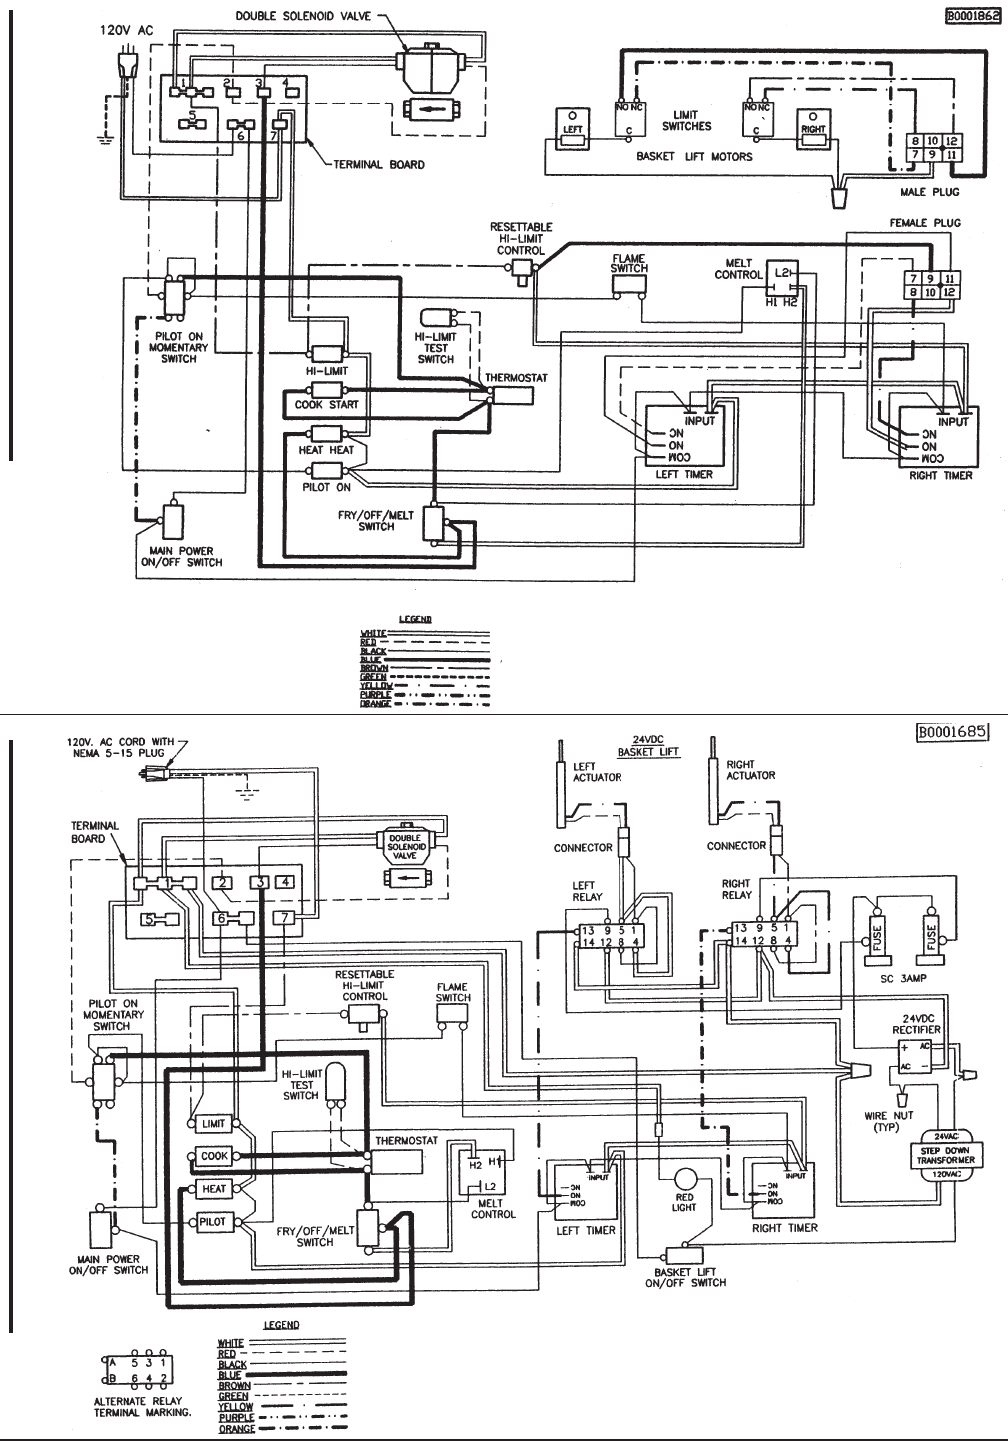 "page 27 of keating of chicago fryer gas fryer user guide 18"" and above ts basket lift wiring diagram"